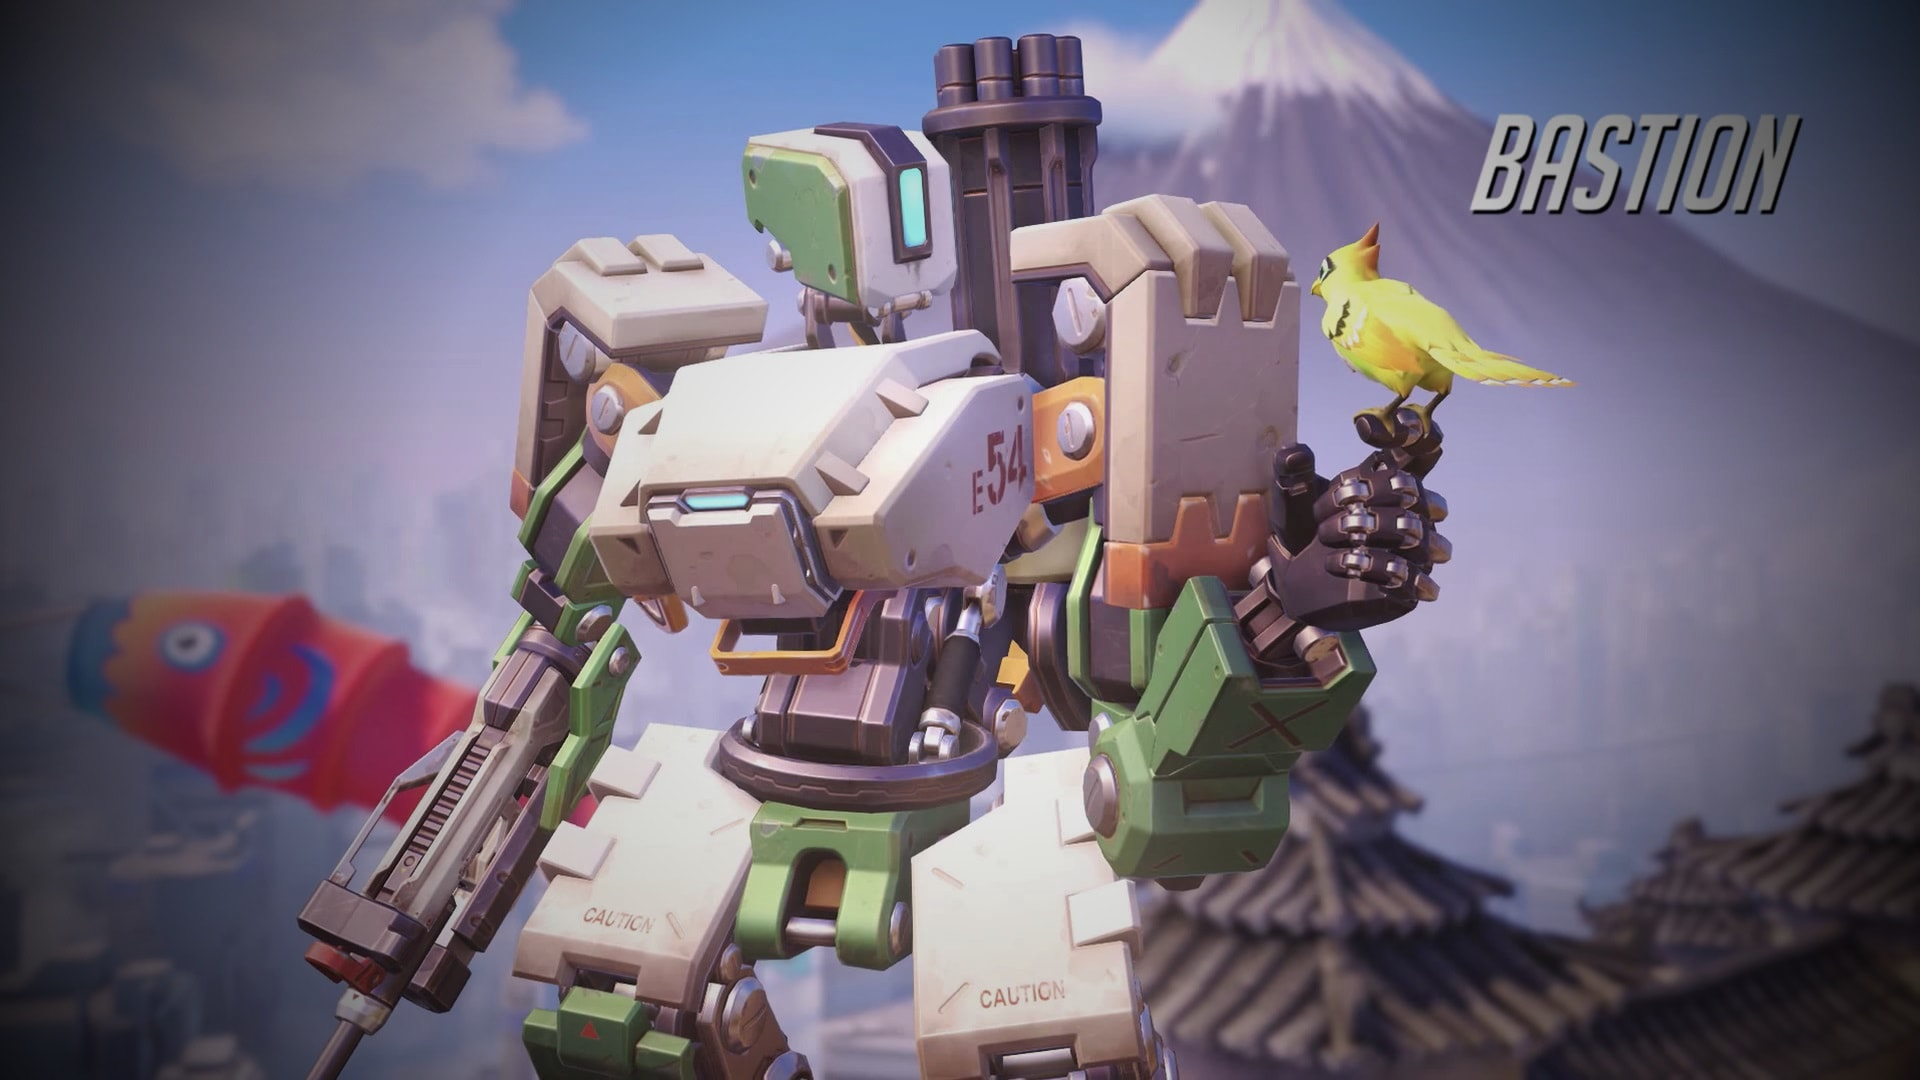 Overwatch : Bastion Wallpapers hd